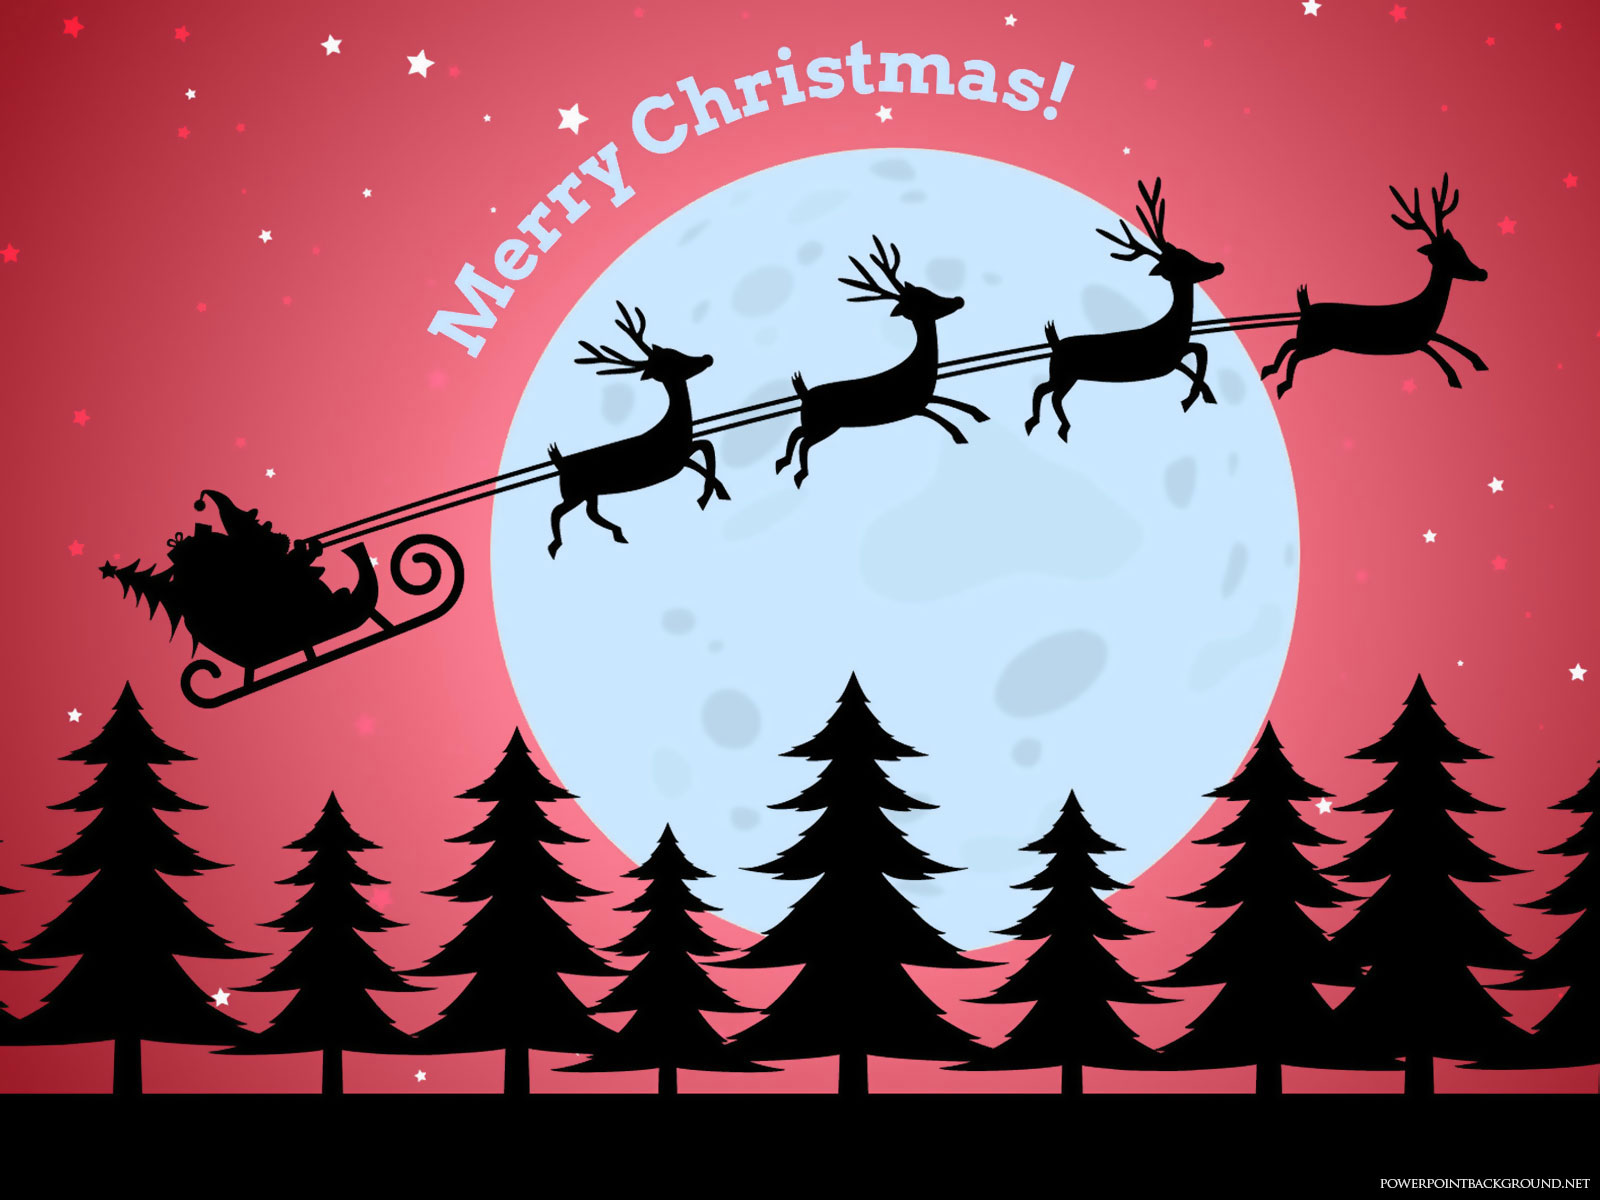 Merry Christmas Santa Claus Background – Powerpoint Background